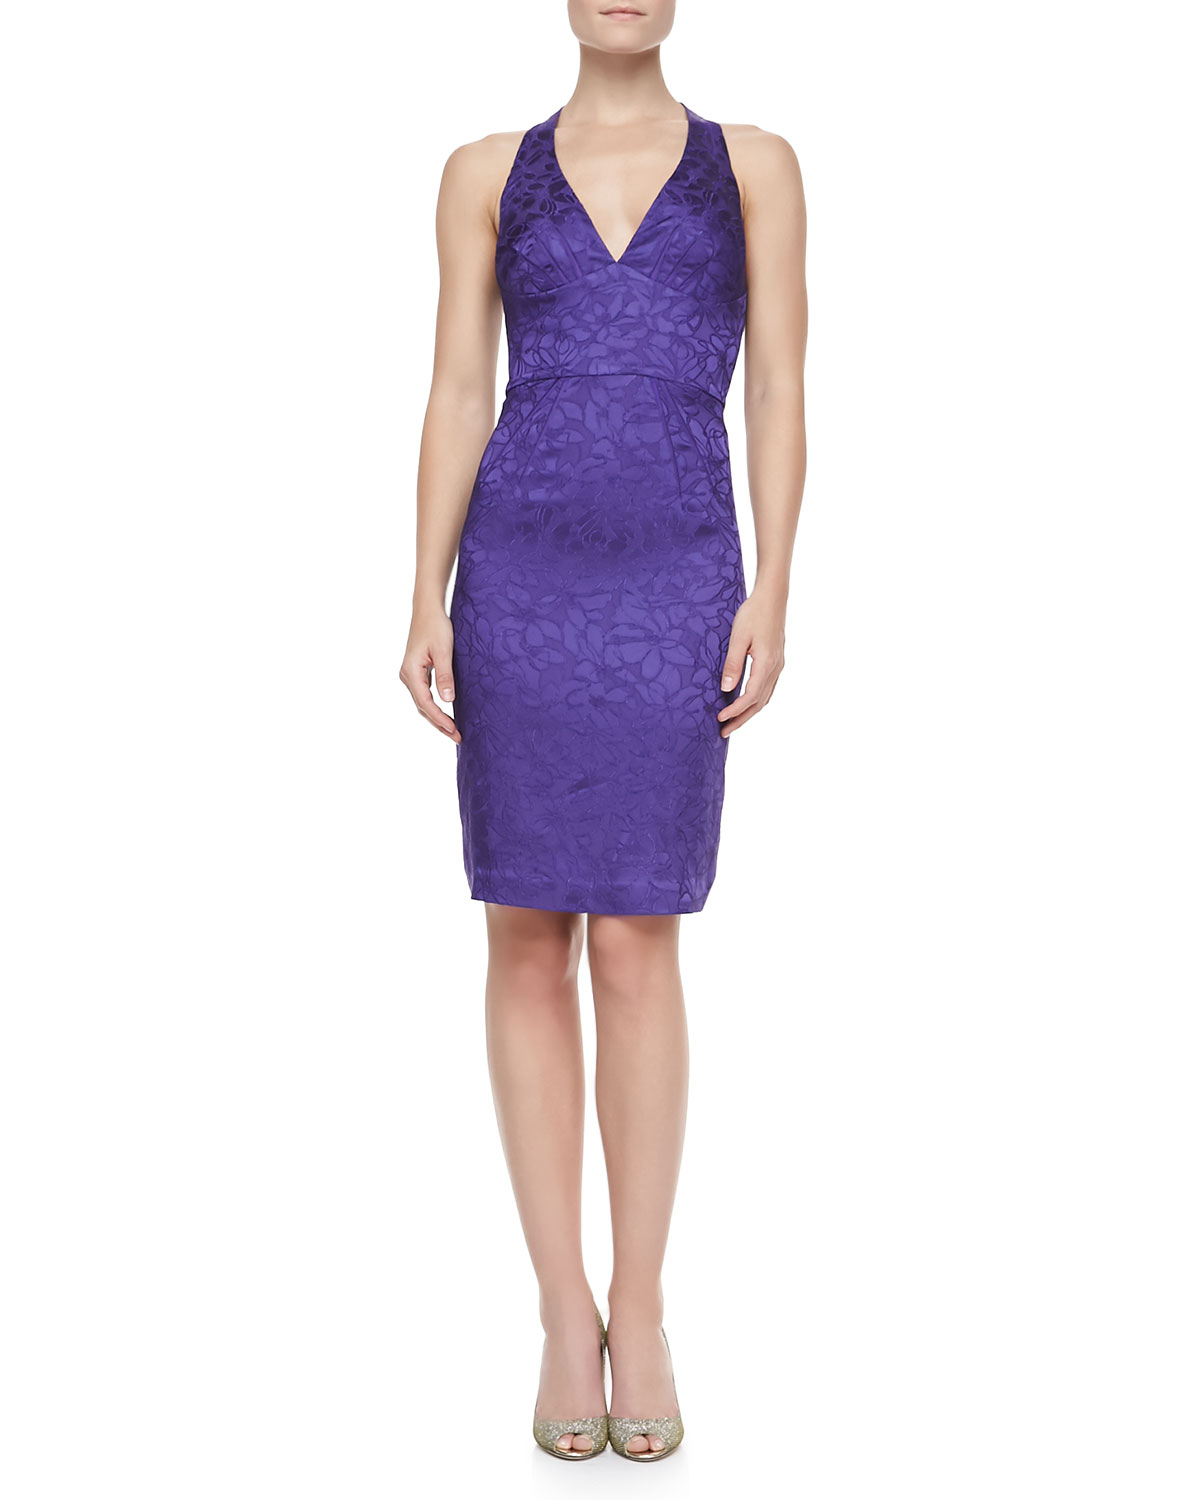 Zac Posen Cocktail Dresses 55